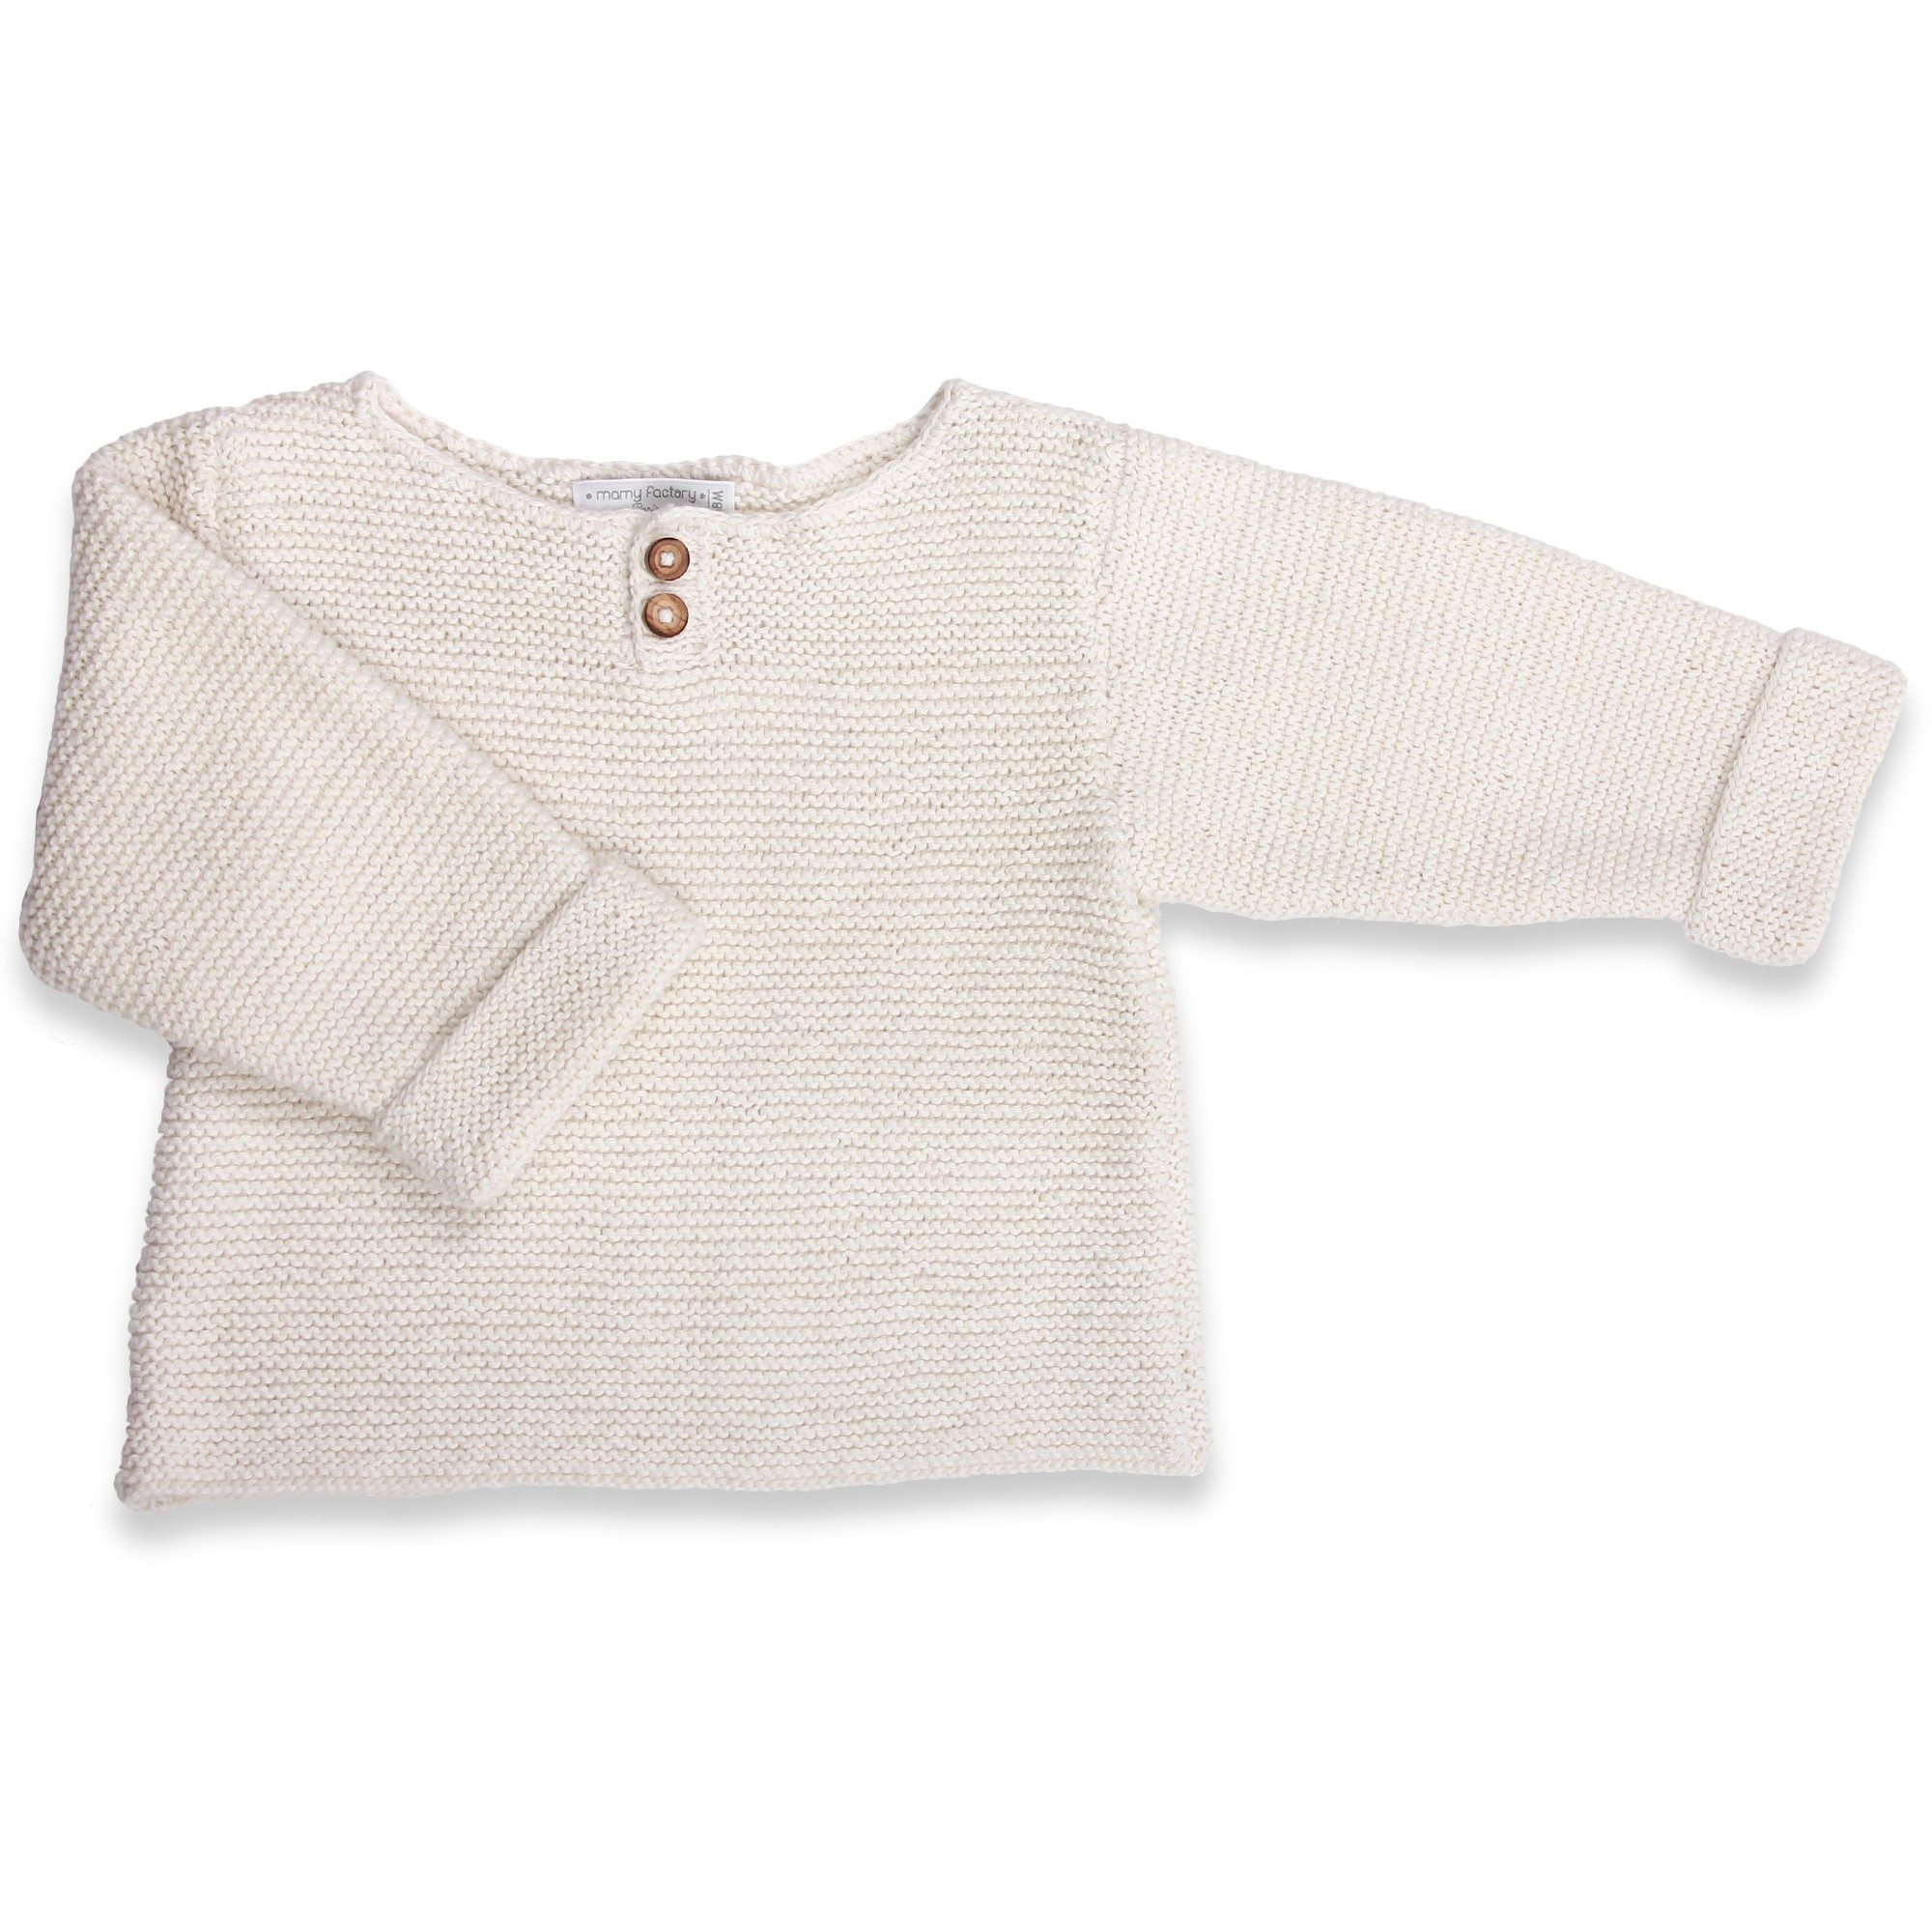 Natural white baby sweater in moss stitch made from cotton and cachemire